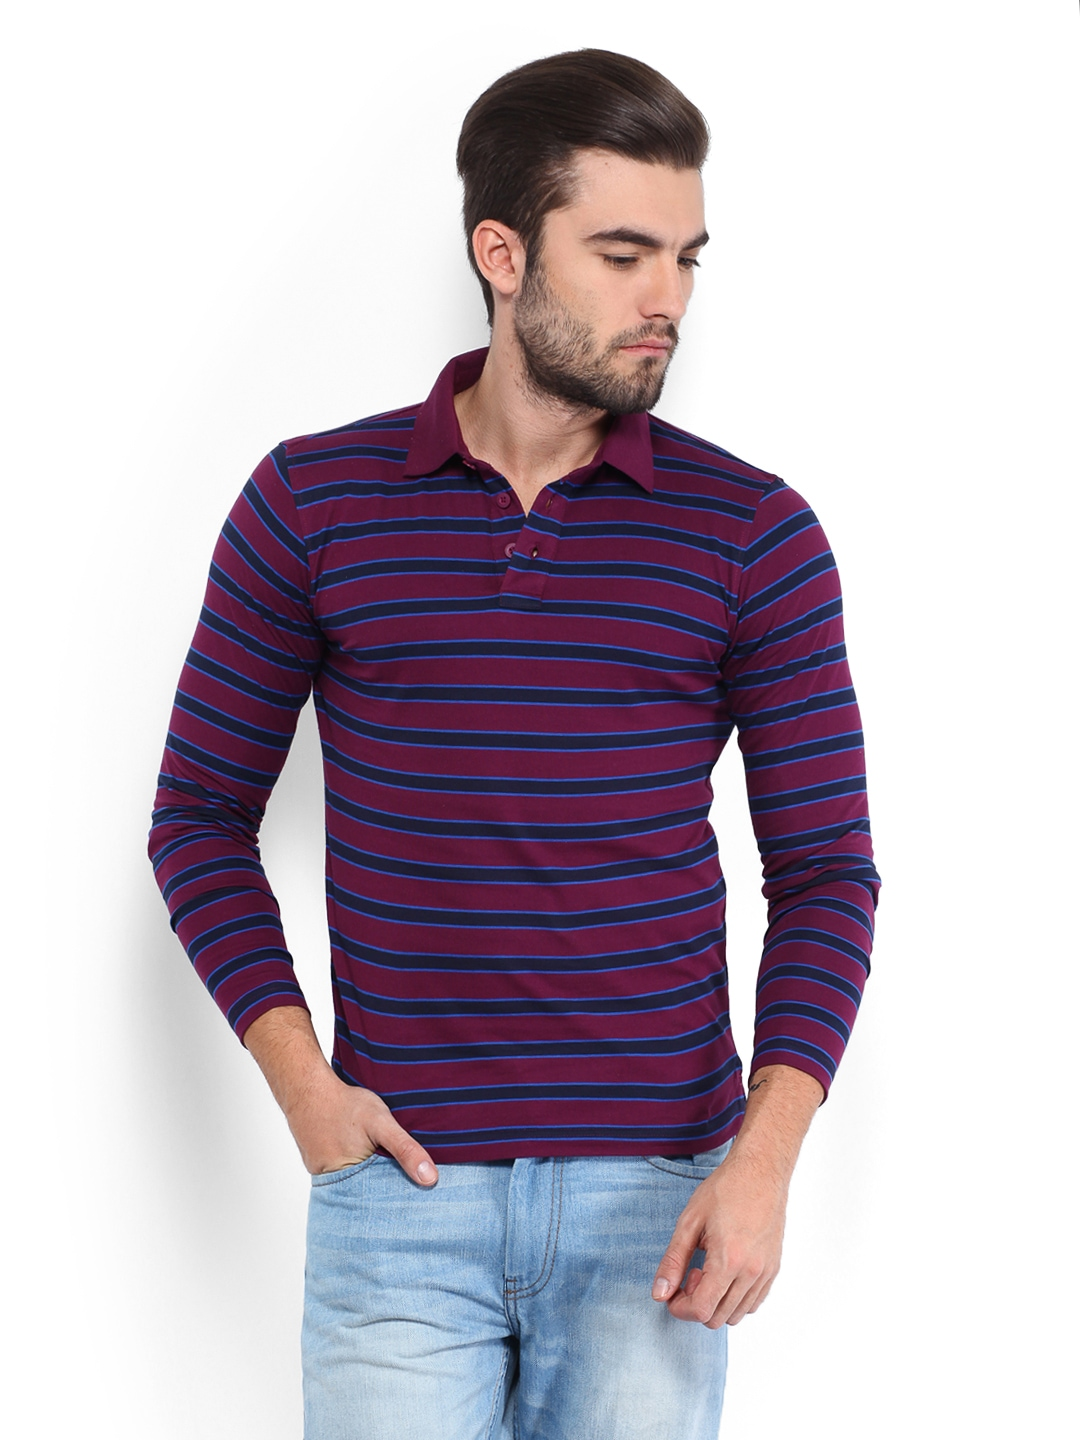 Myntra highlander men purple striped polo t shirt 489514 for Purple and black striped t shirt